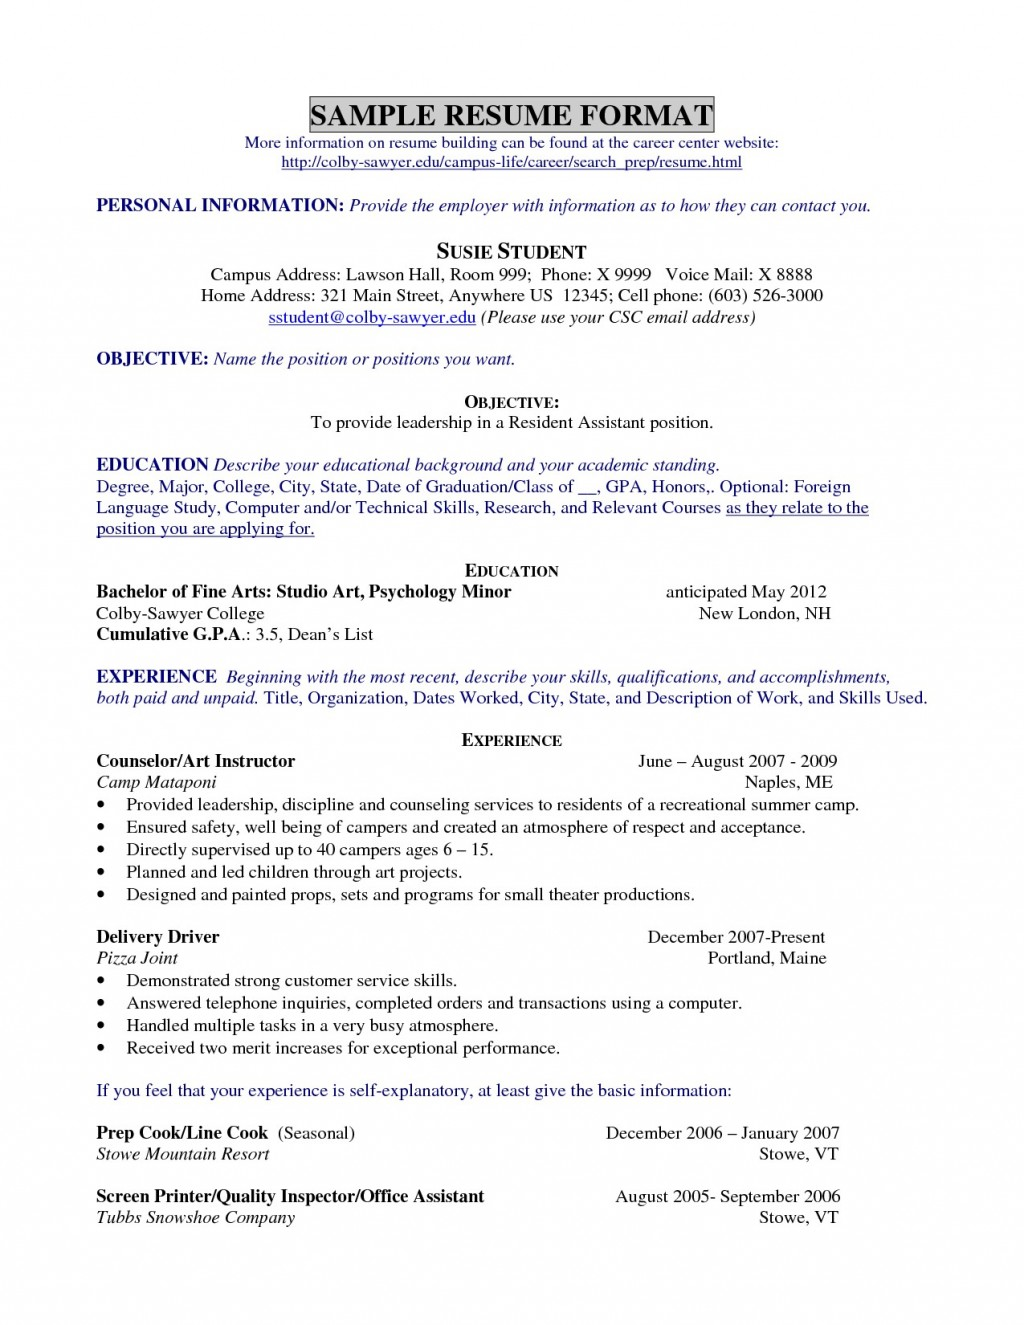 002 Pay Someone To Do My Essay Example Cheap Educationusa Best Place How Write Resume Formidable Need Review Should I Large